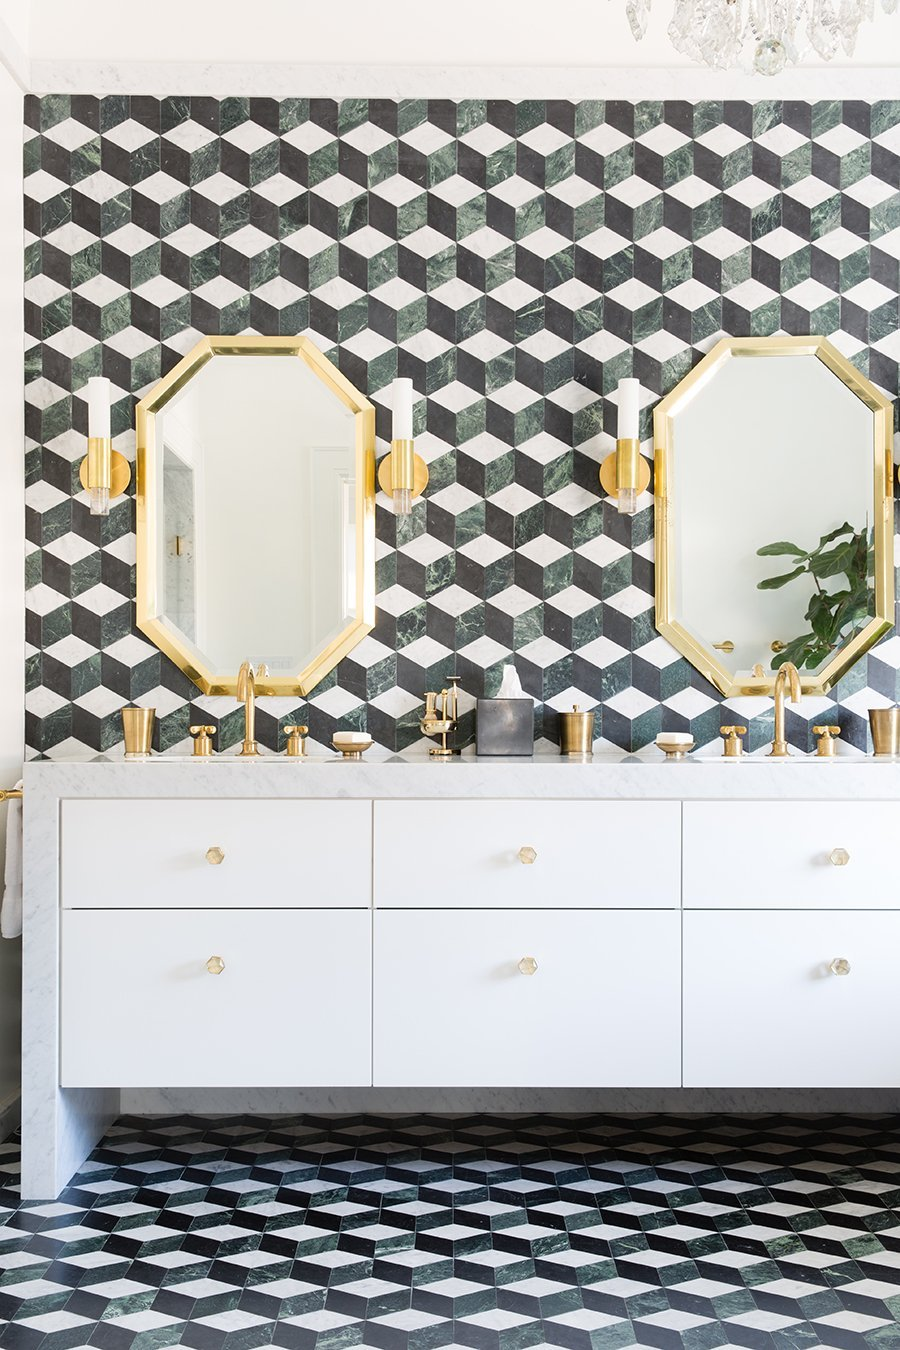 Caden Sconce and Thea Large Knob by Matthew Studios in Clear Quartz and Polished Brass. Interiors by HSH Interiors.